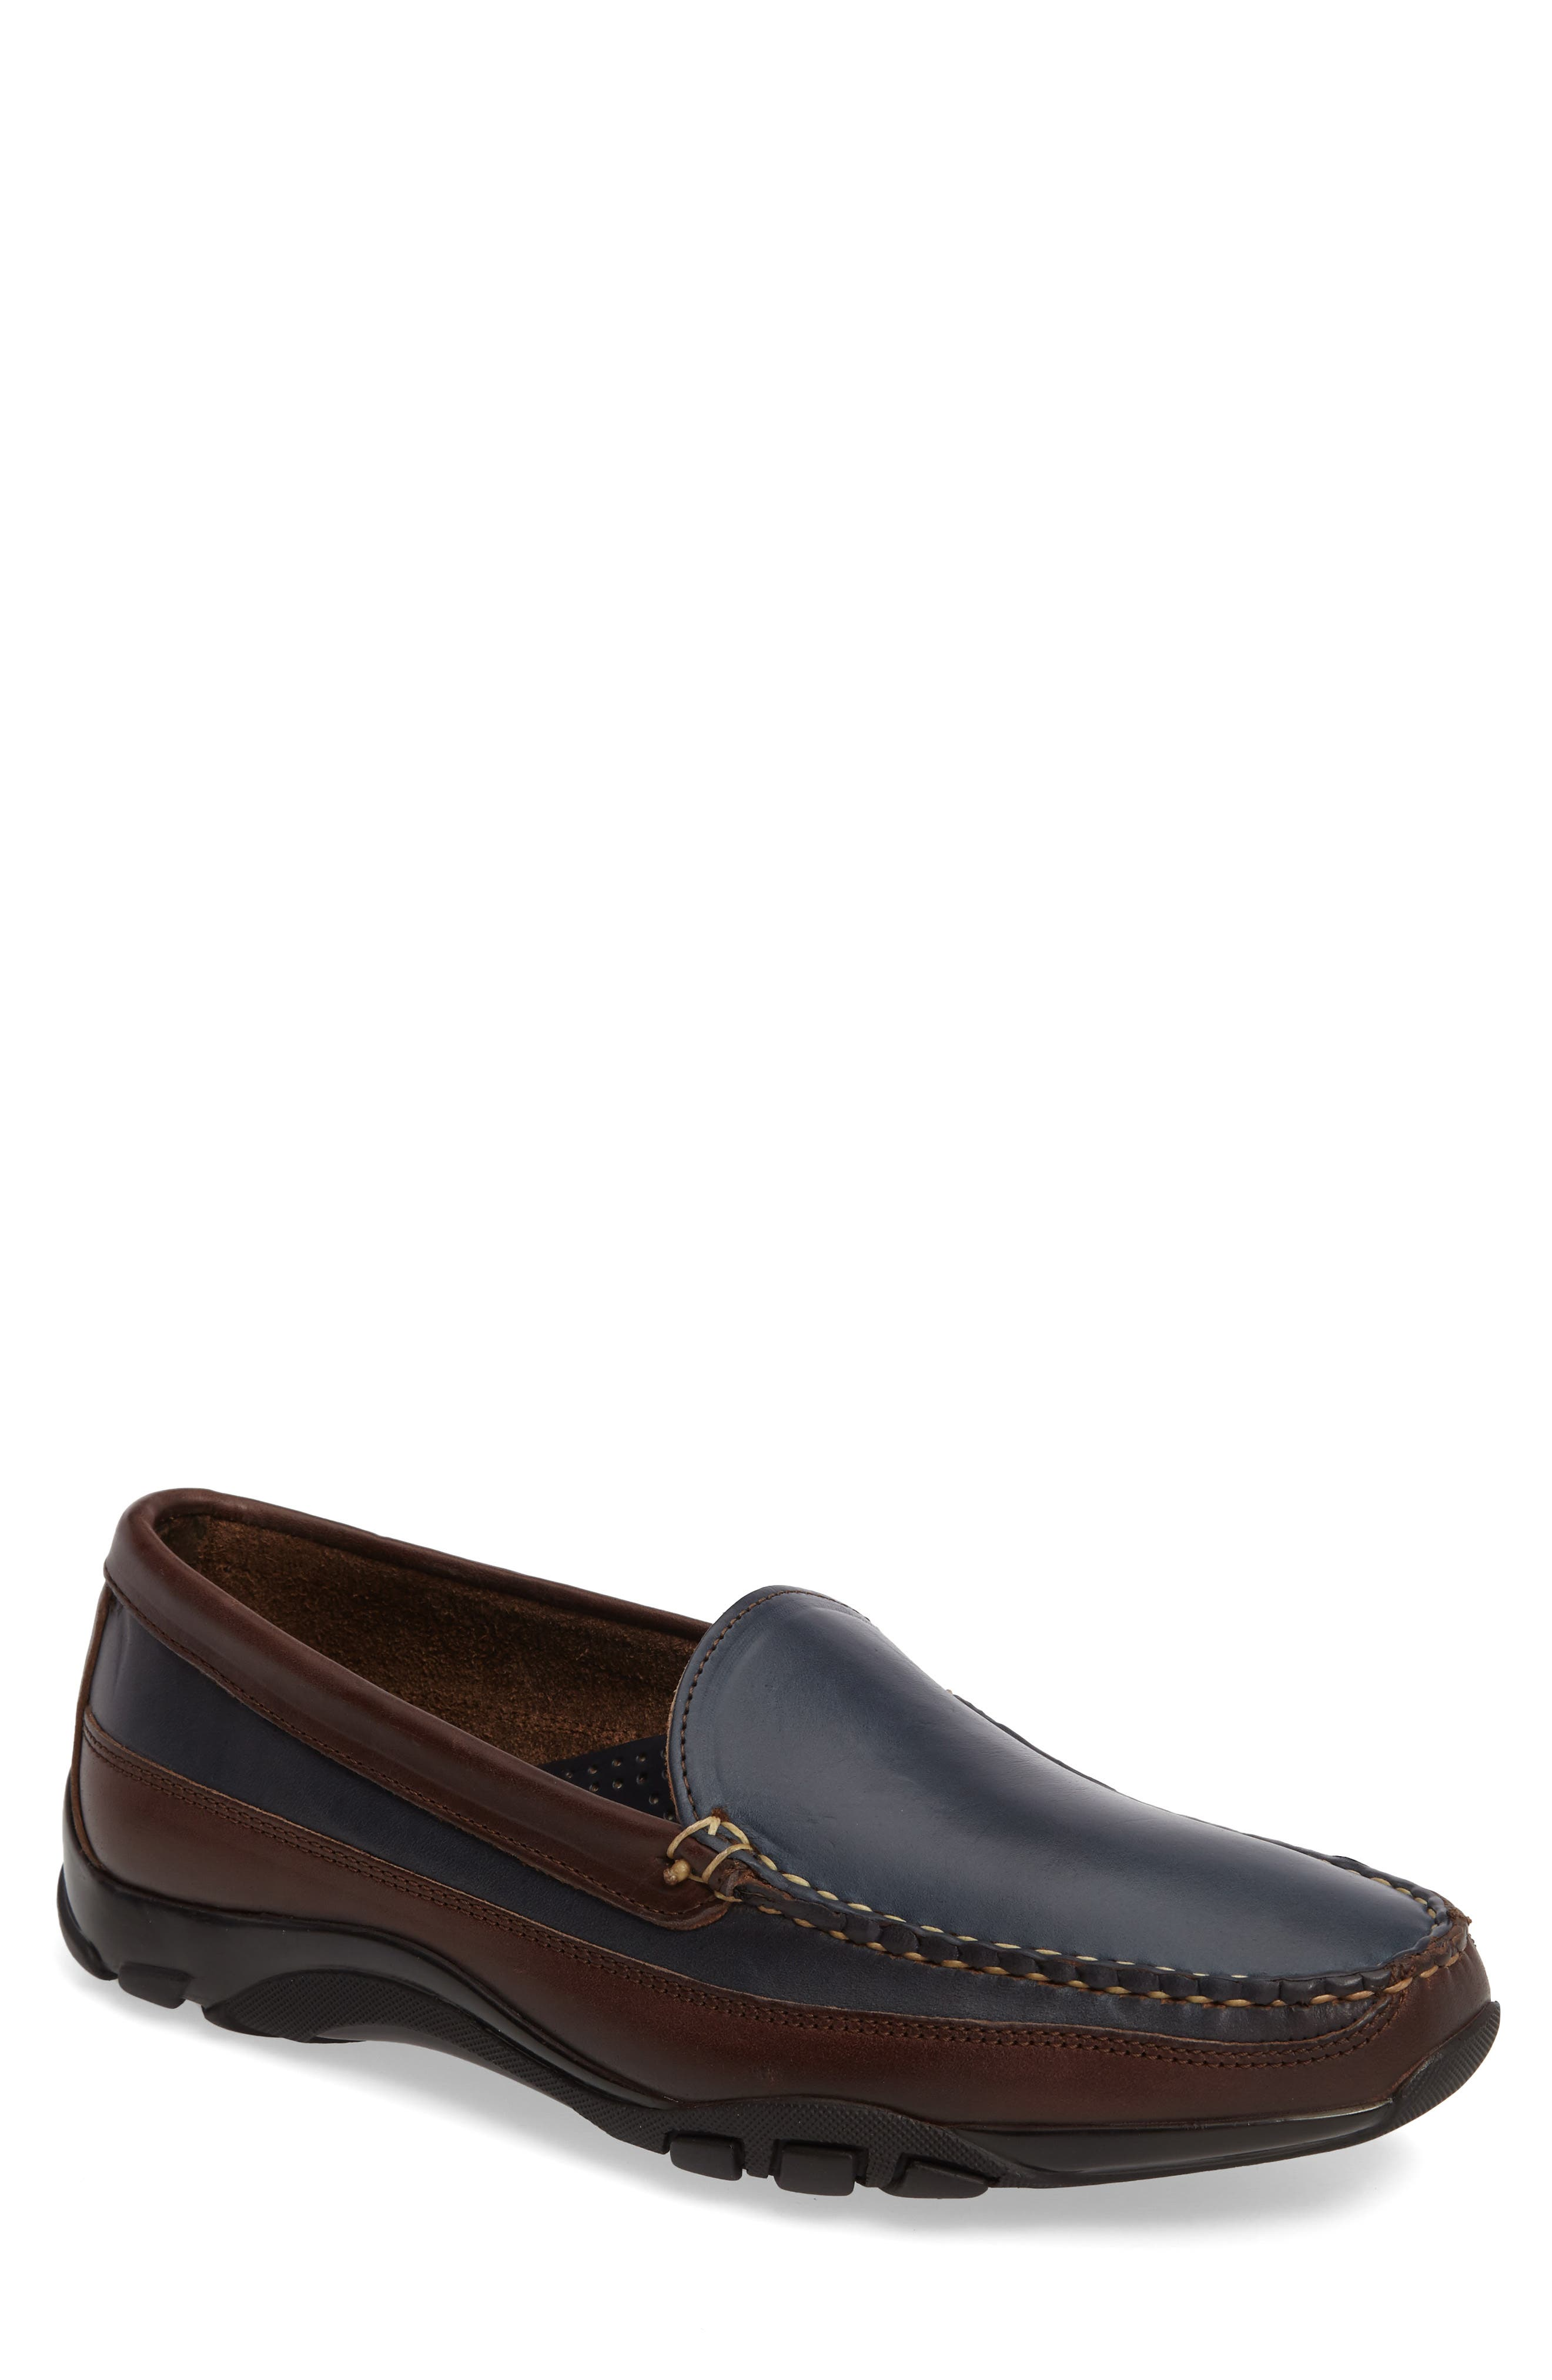 ALLEN EDMONDS 'Boulder' Driving Loafer, Main, color, NAVY/ BROWN